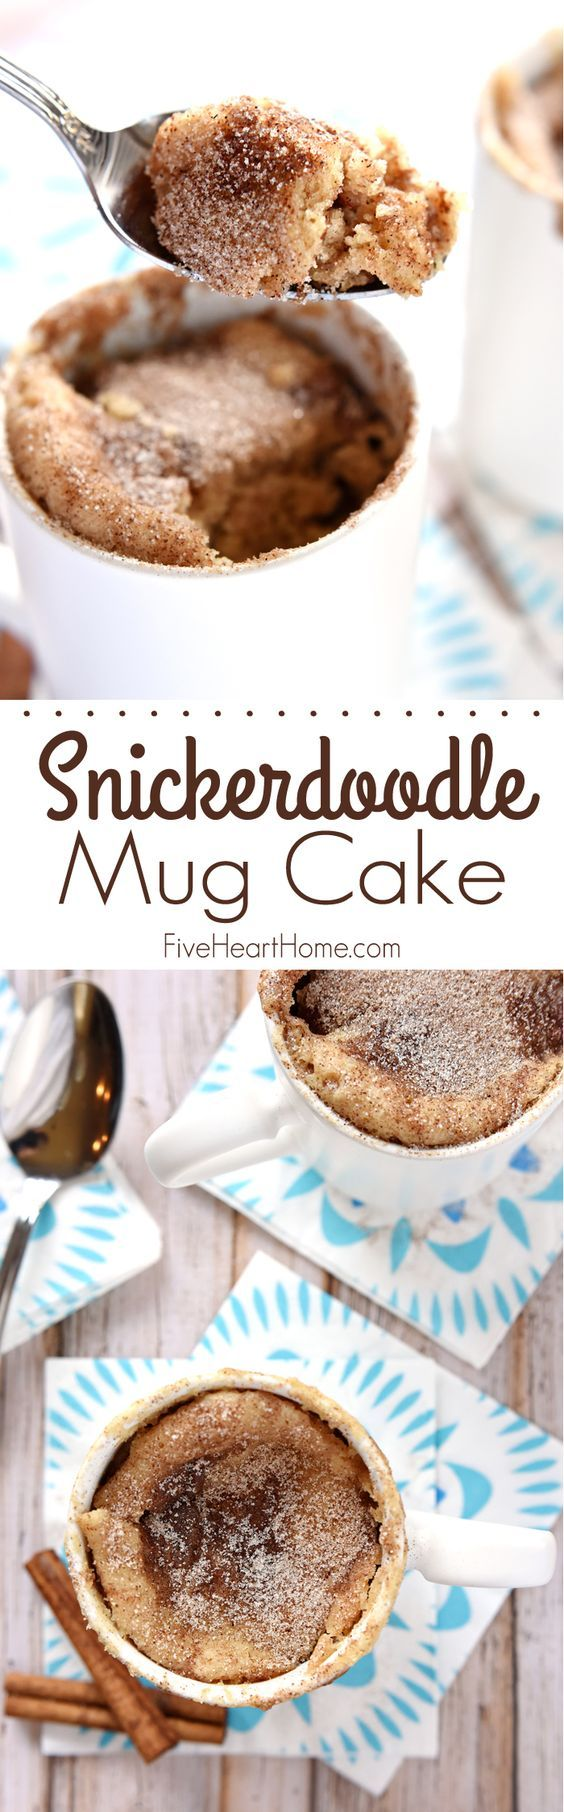 Snickerdoodle Mug Cake ~ bakes up in the microwave in just one minute yielding a…